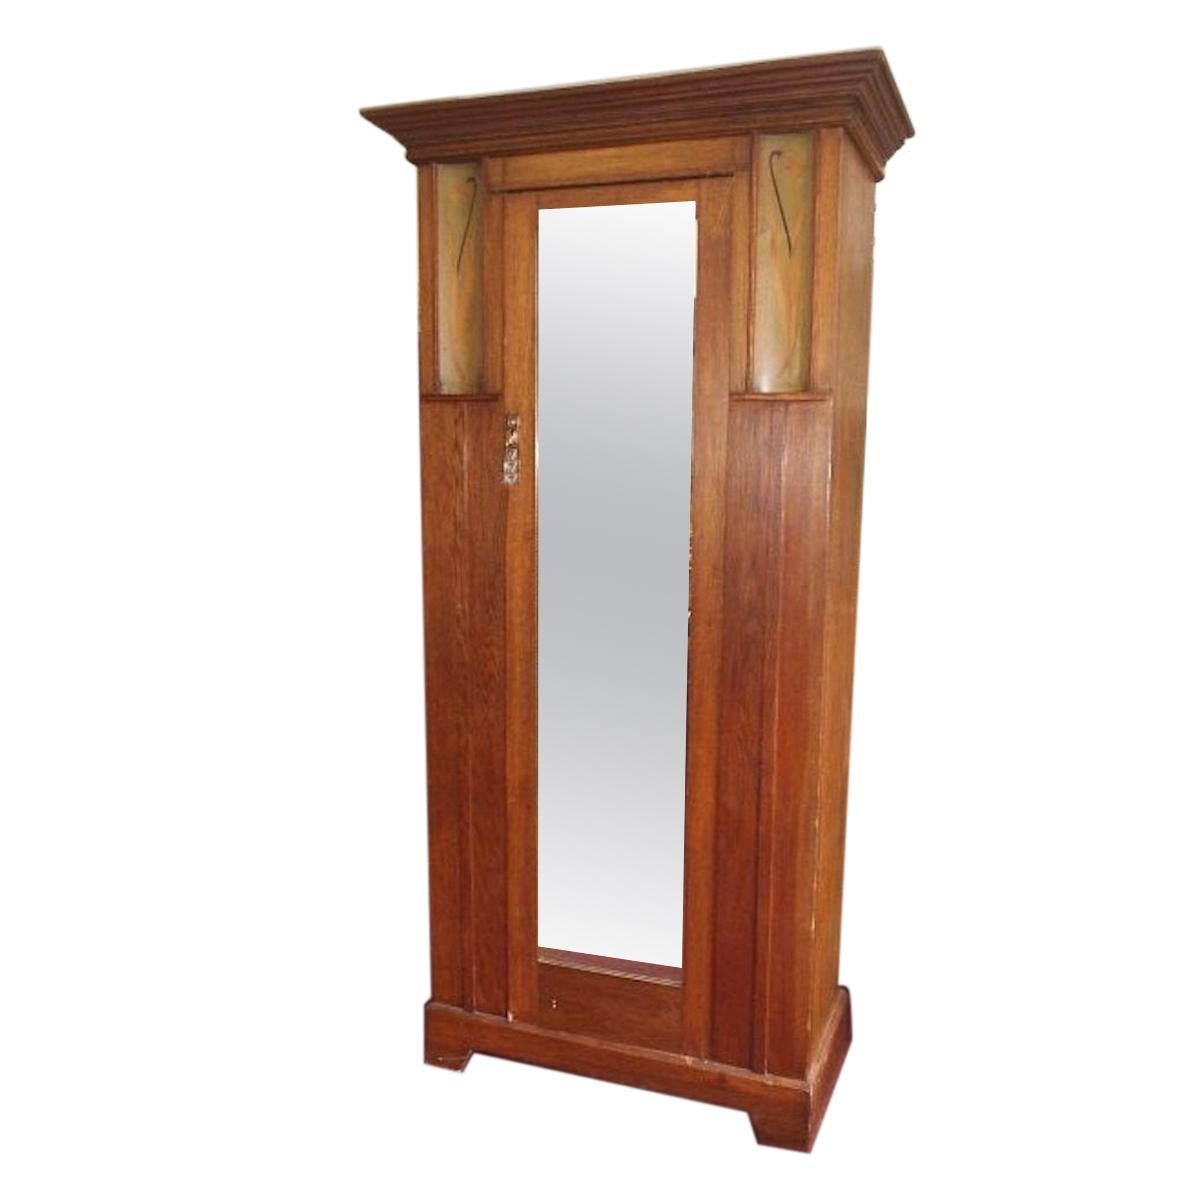 Baillie Scott Style of, Arts & Crafts Oak Armoire Wardrobe with Daffodil Inlays